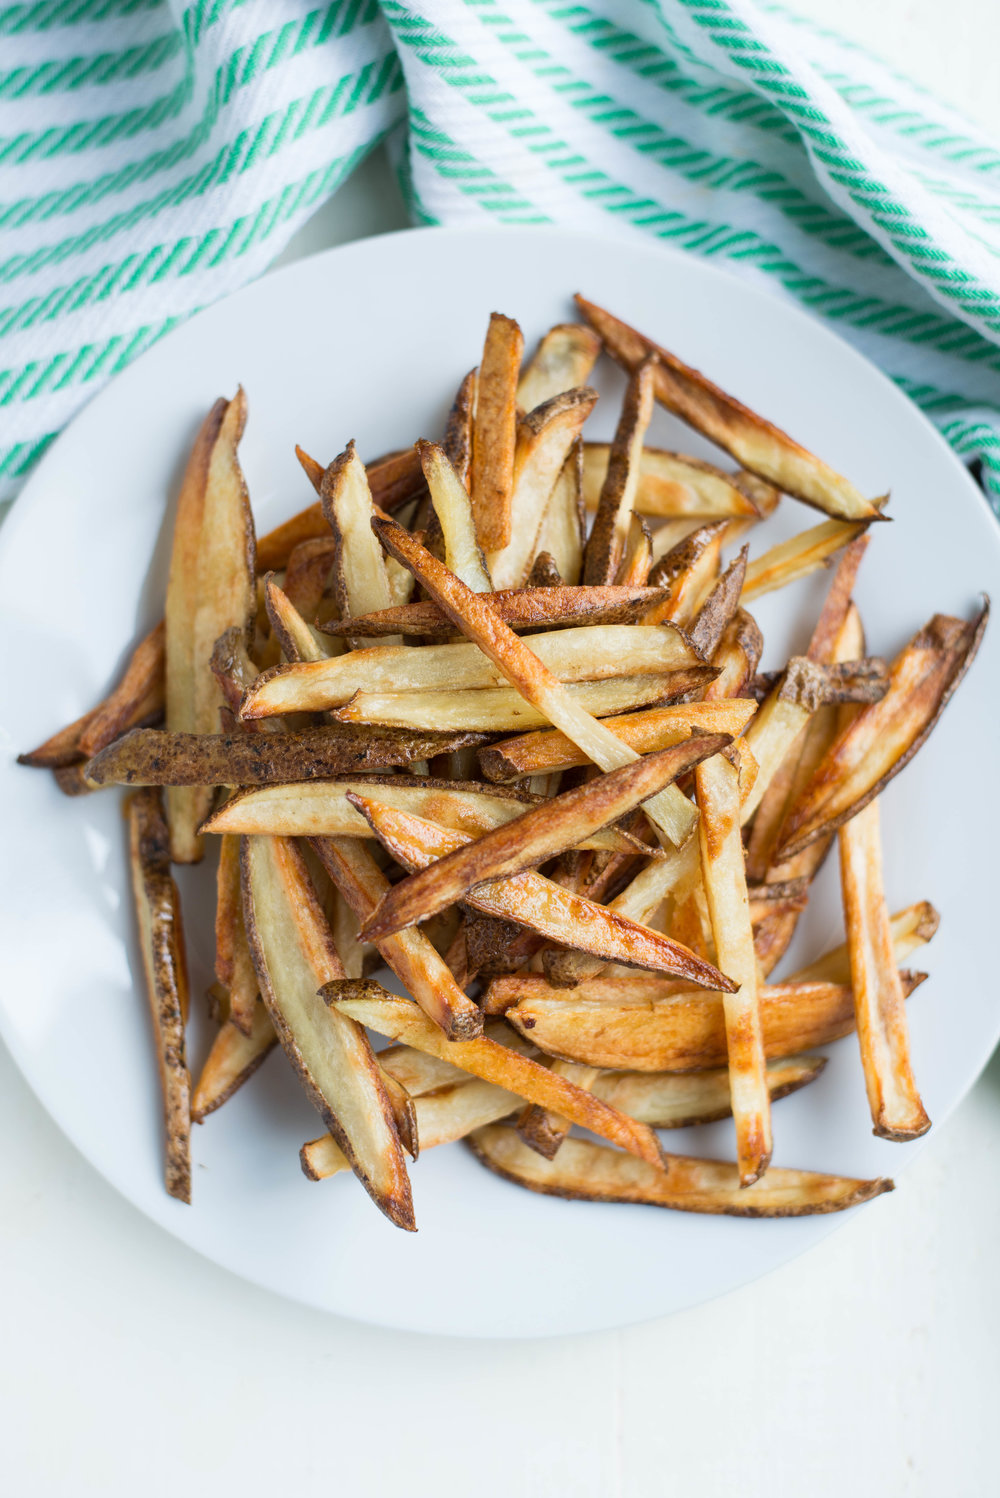 3 simple ingredients combine in these crunchy, crispy, golden-brown Friday Night Oven Fries.